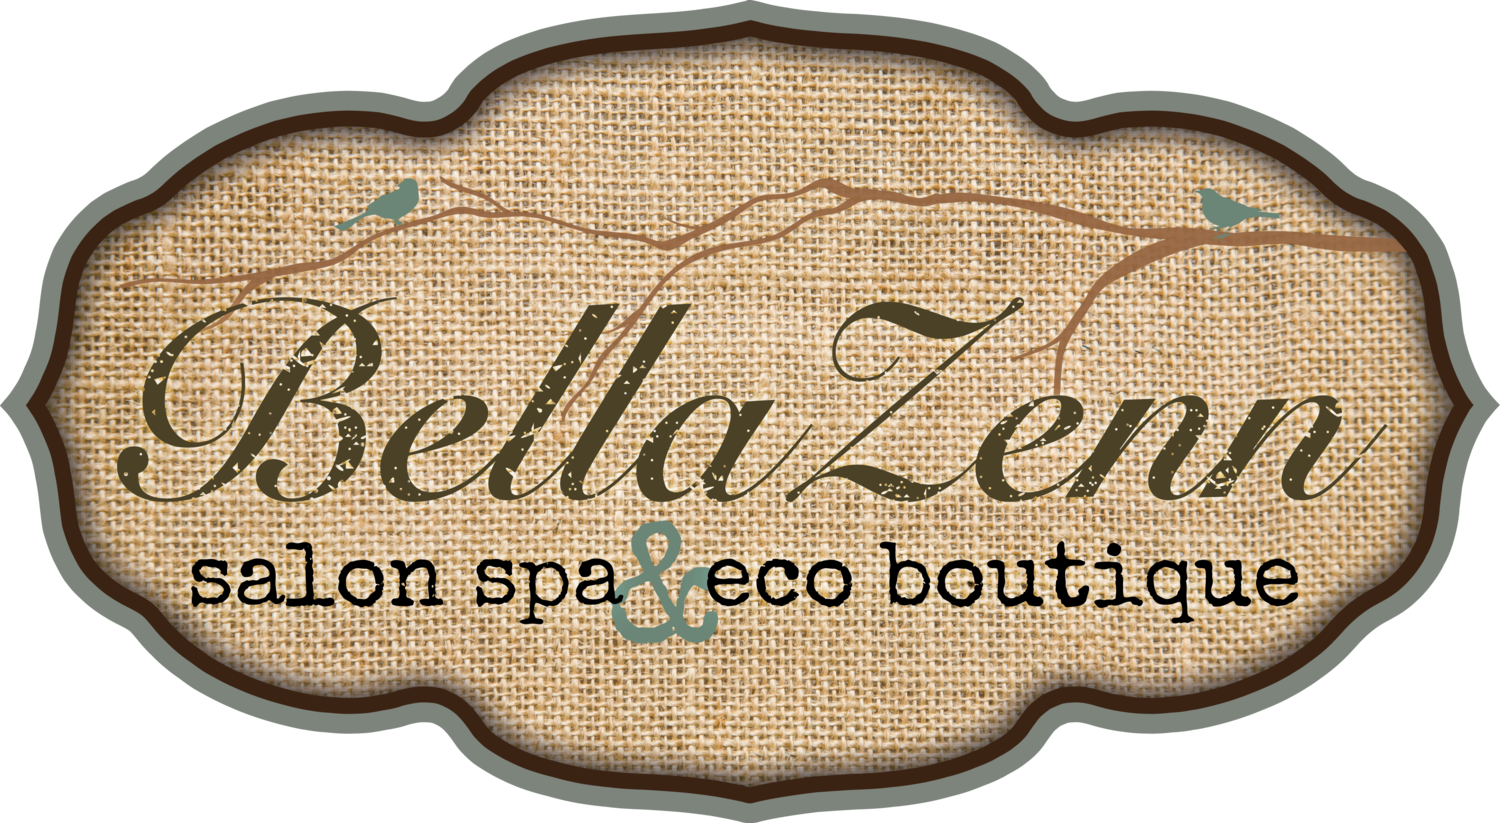 BELLA ZENN SALON SPA & ECO BOUTIQUE